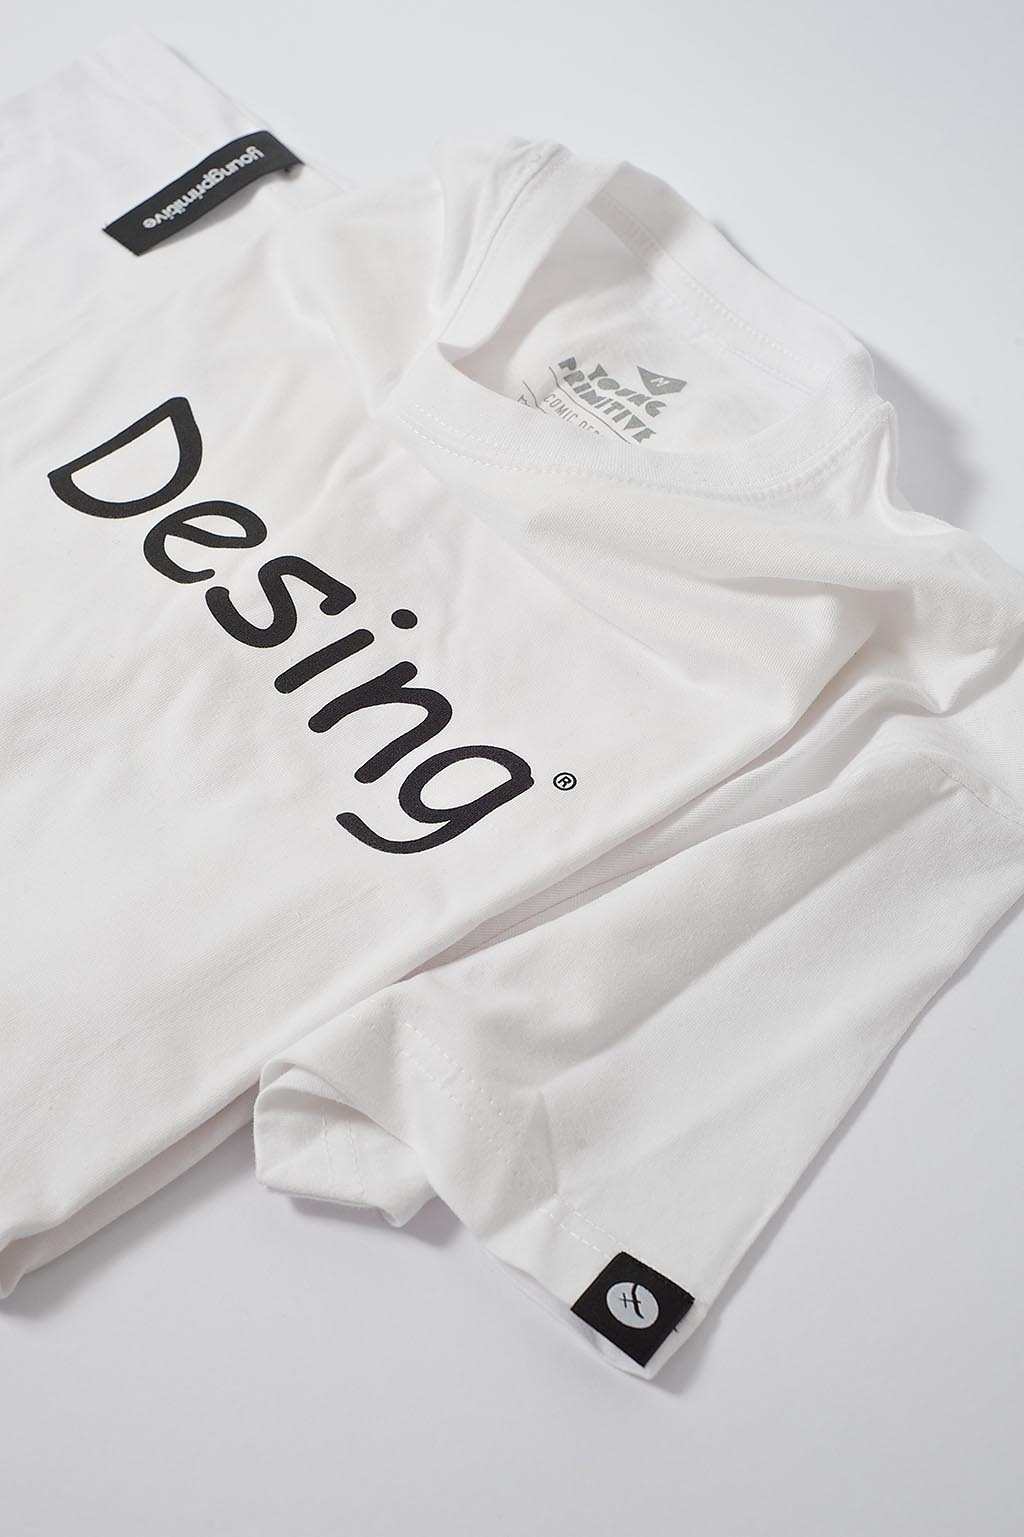 t-shirt for men Desing White